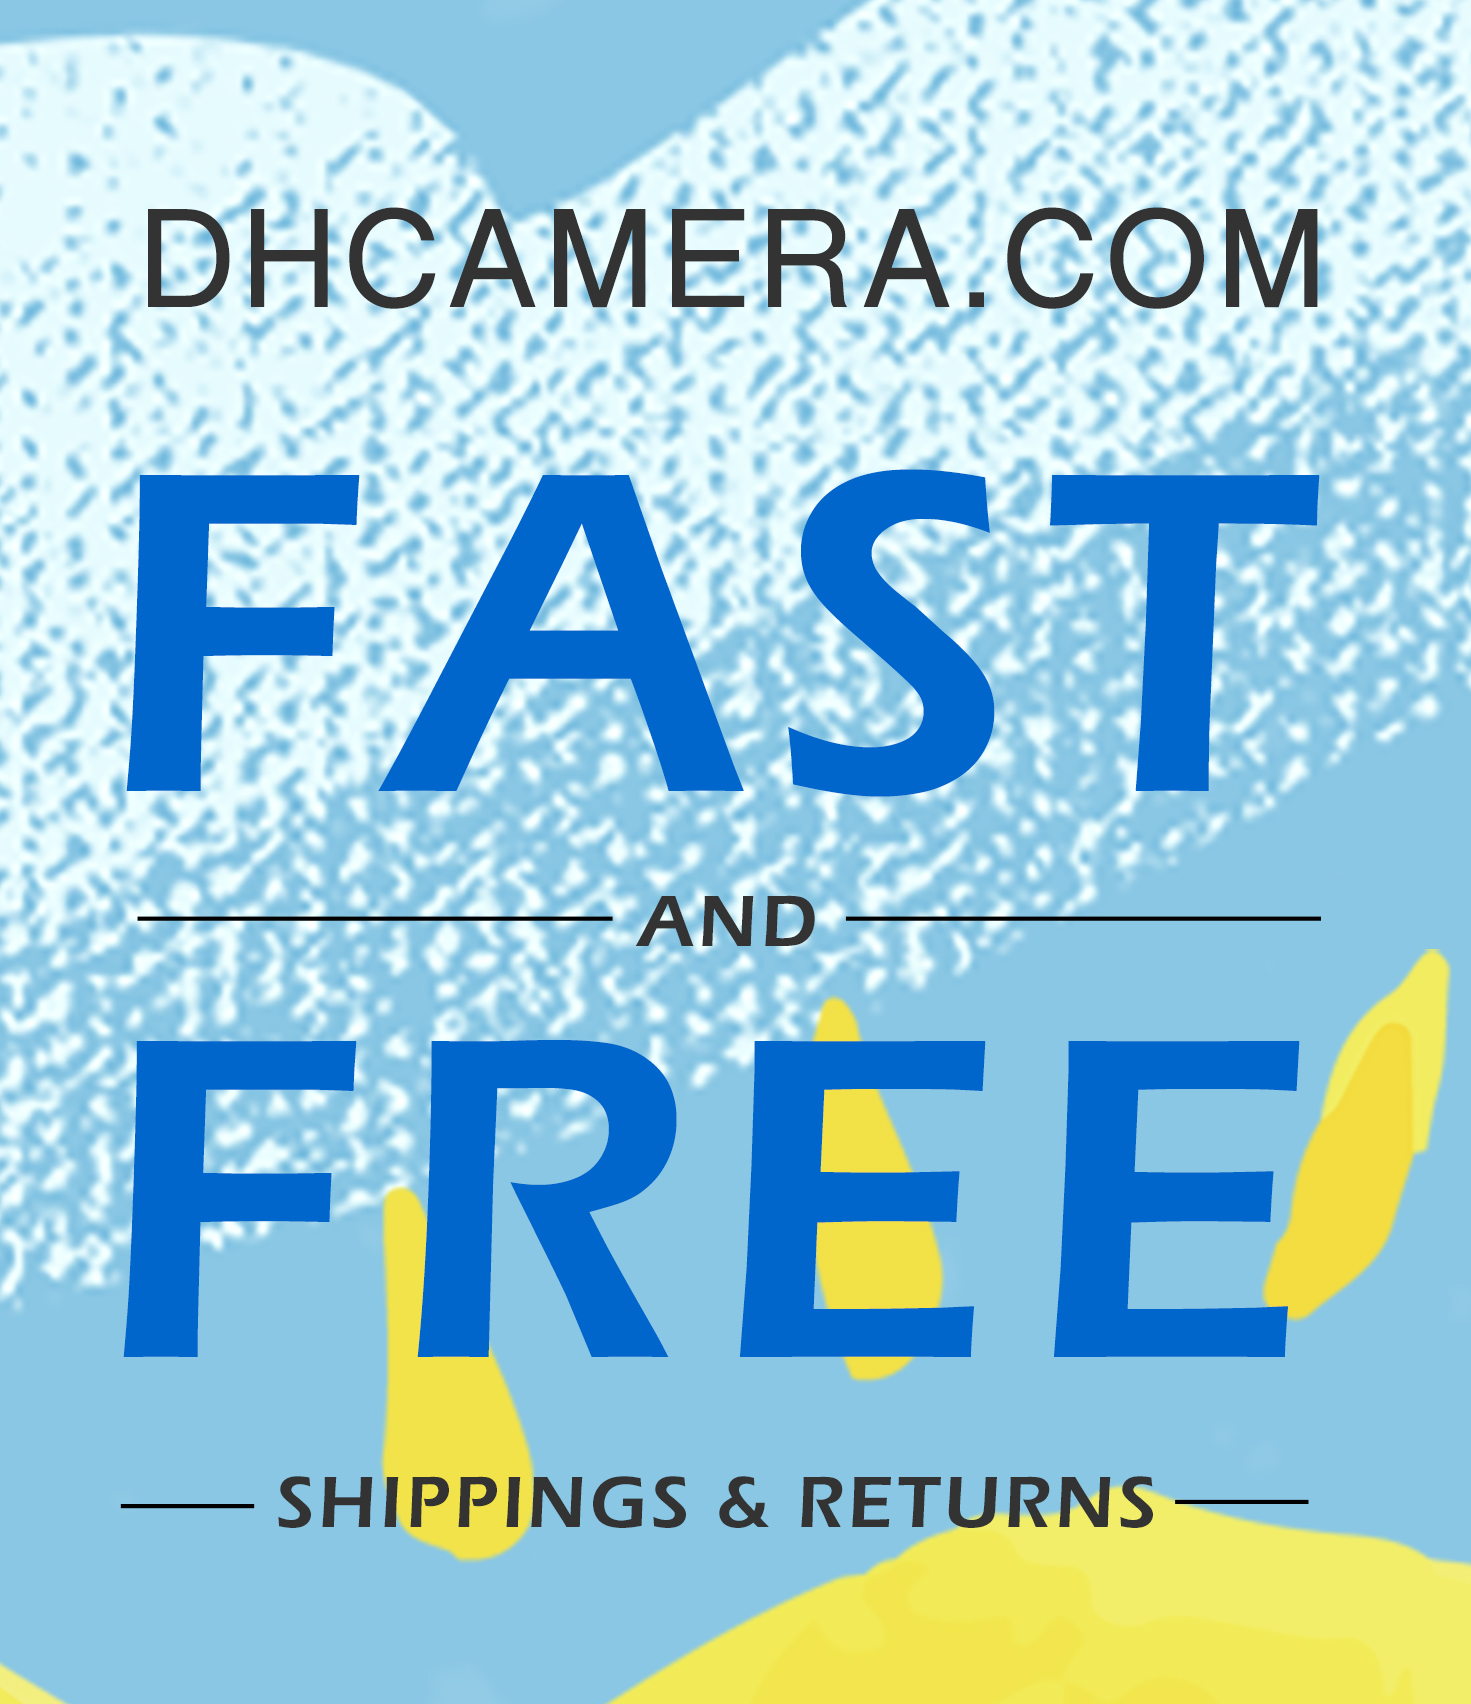 FAST AND FREE SHIPPING AND RETURN